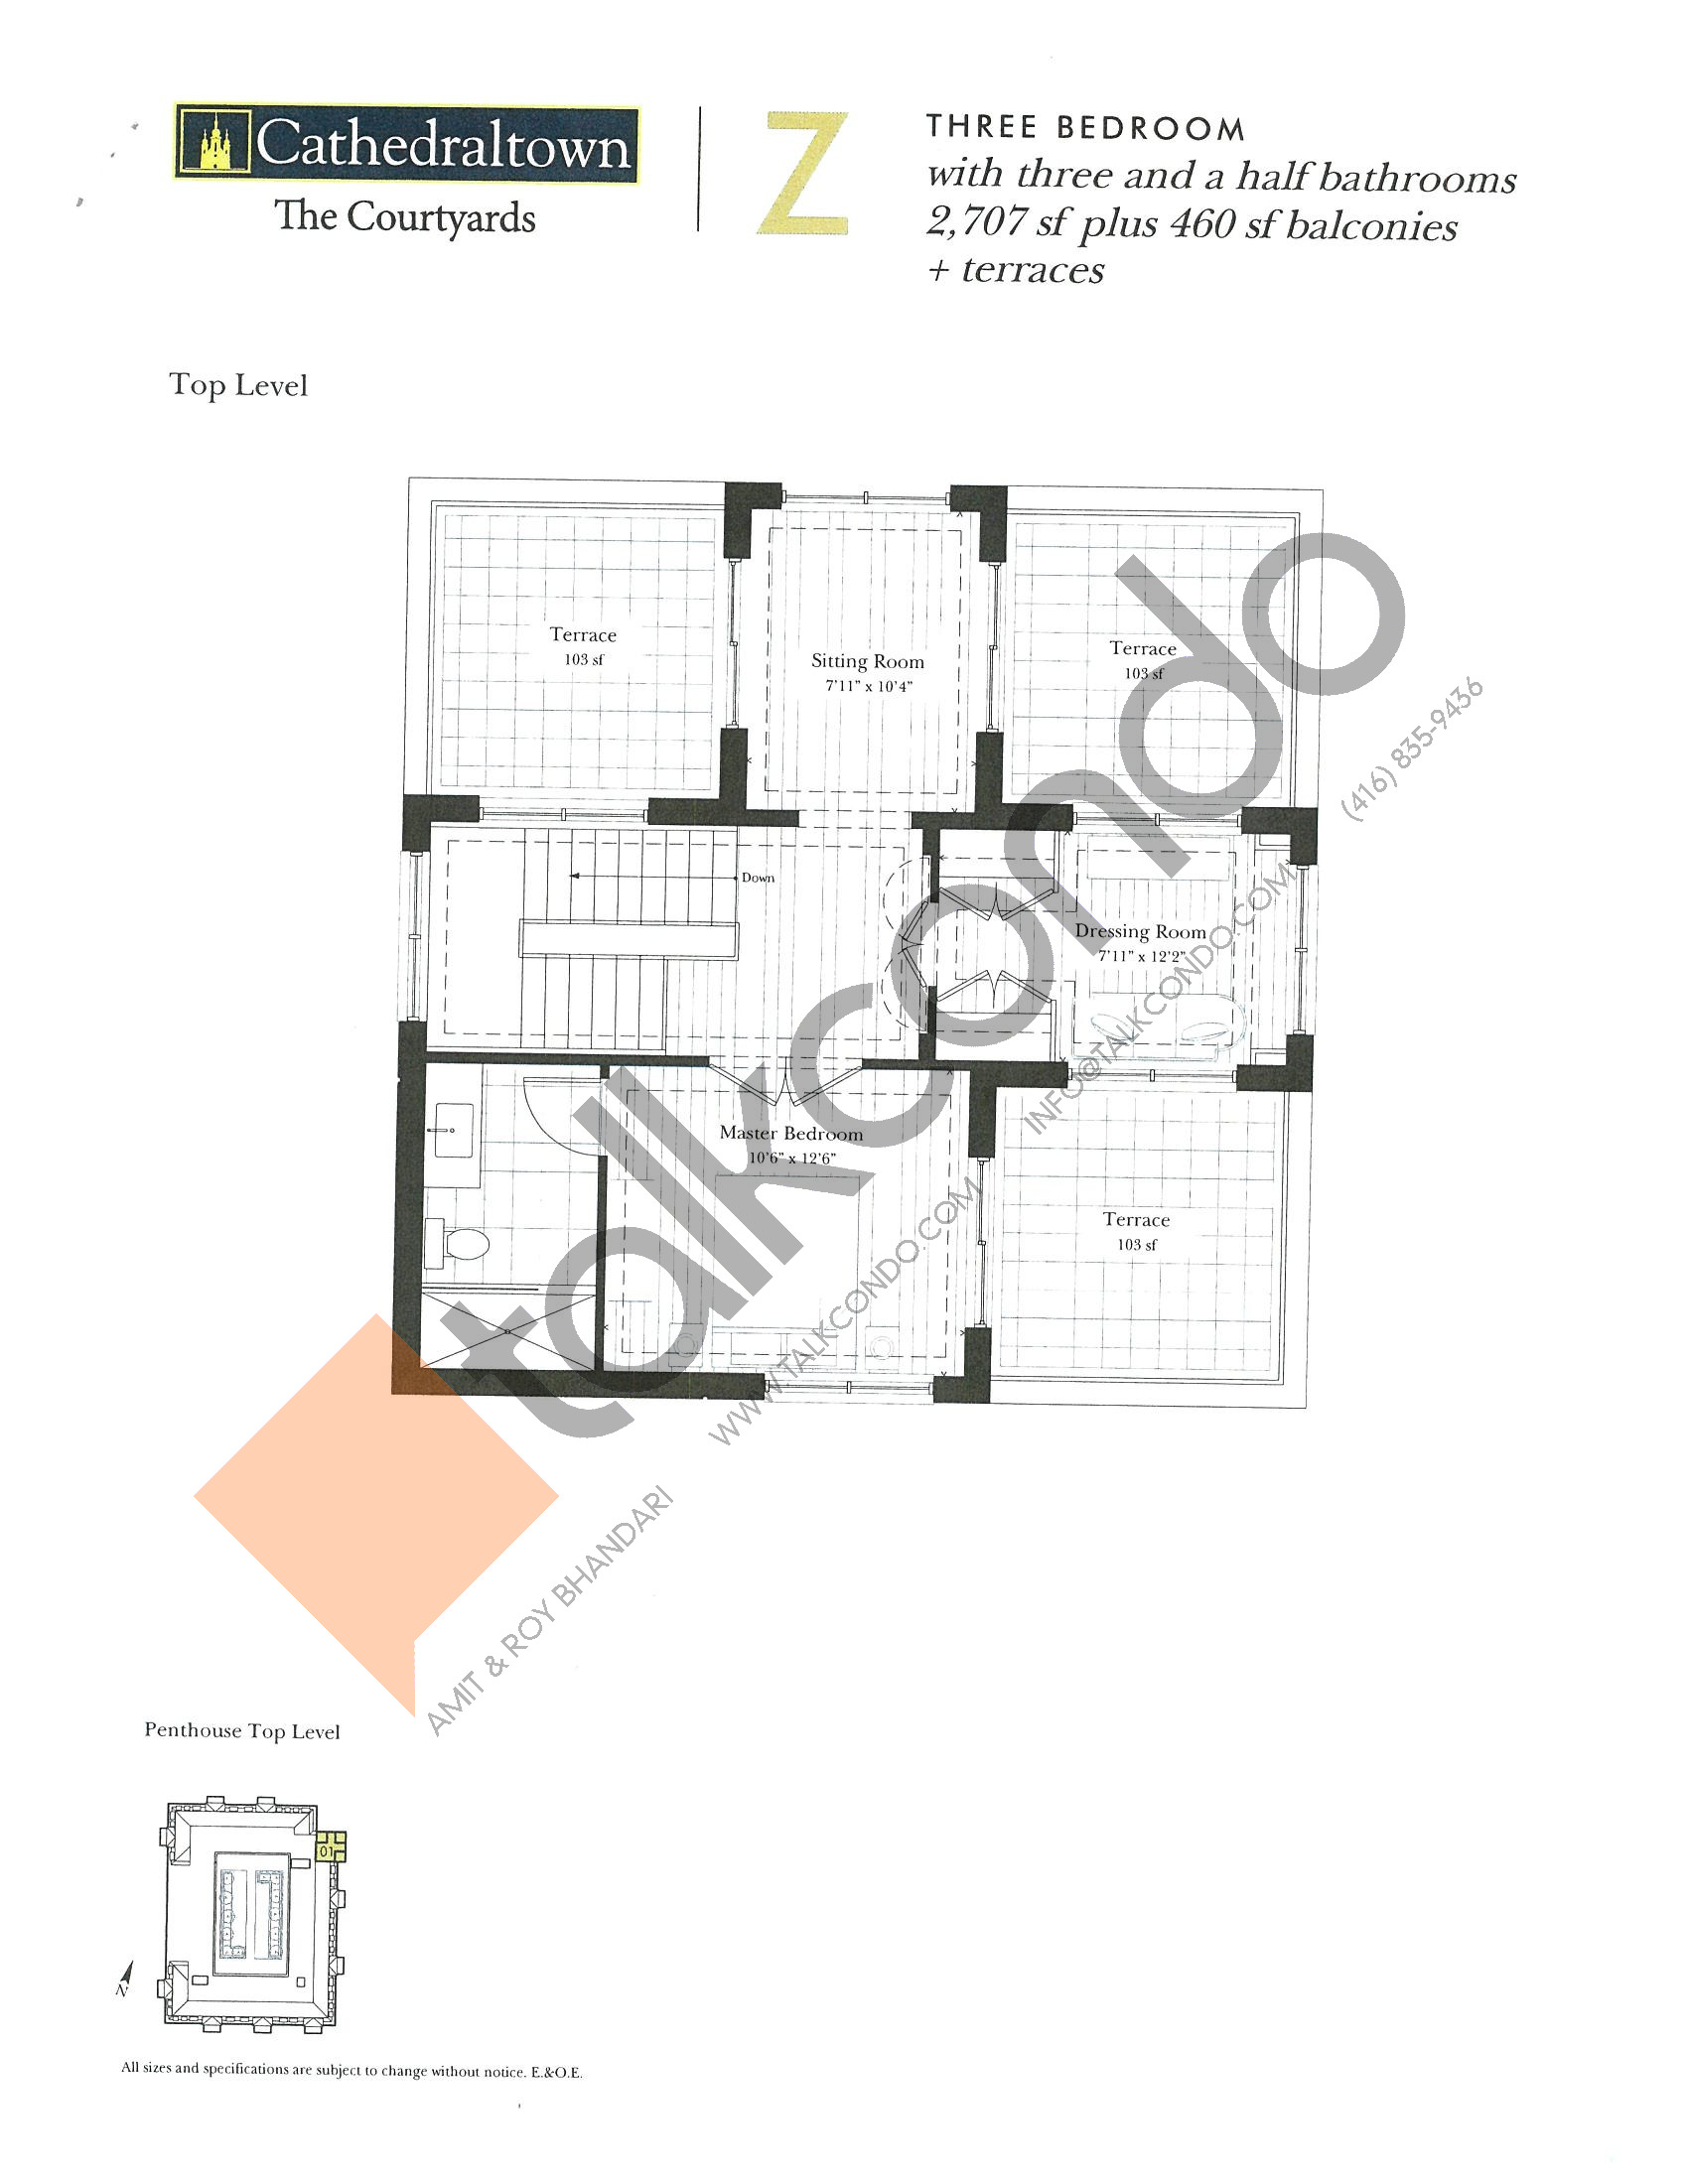 Unit Z (Top) Floor Plan at The Courtyards at Cathedraltown Condos - 2707 sq.ft